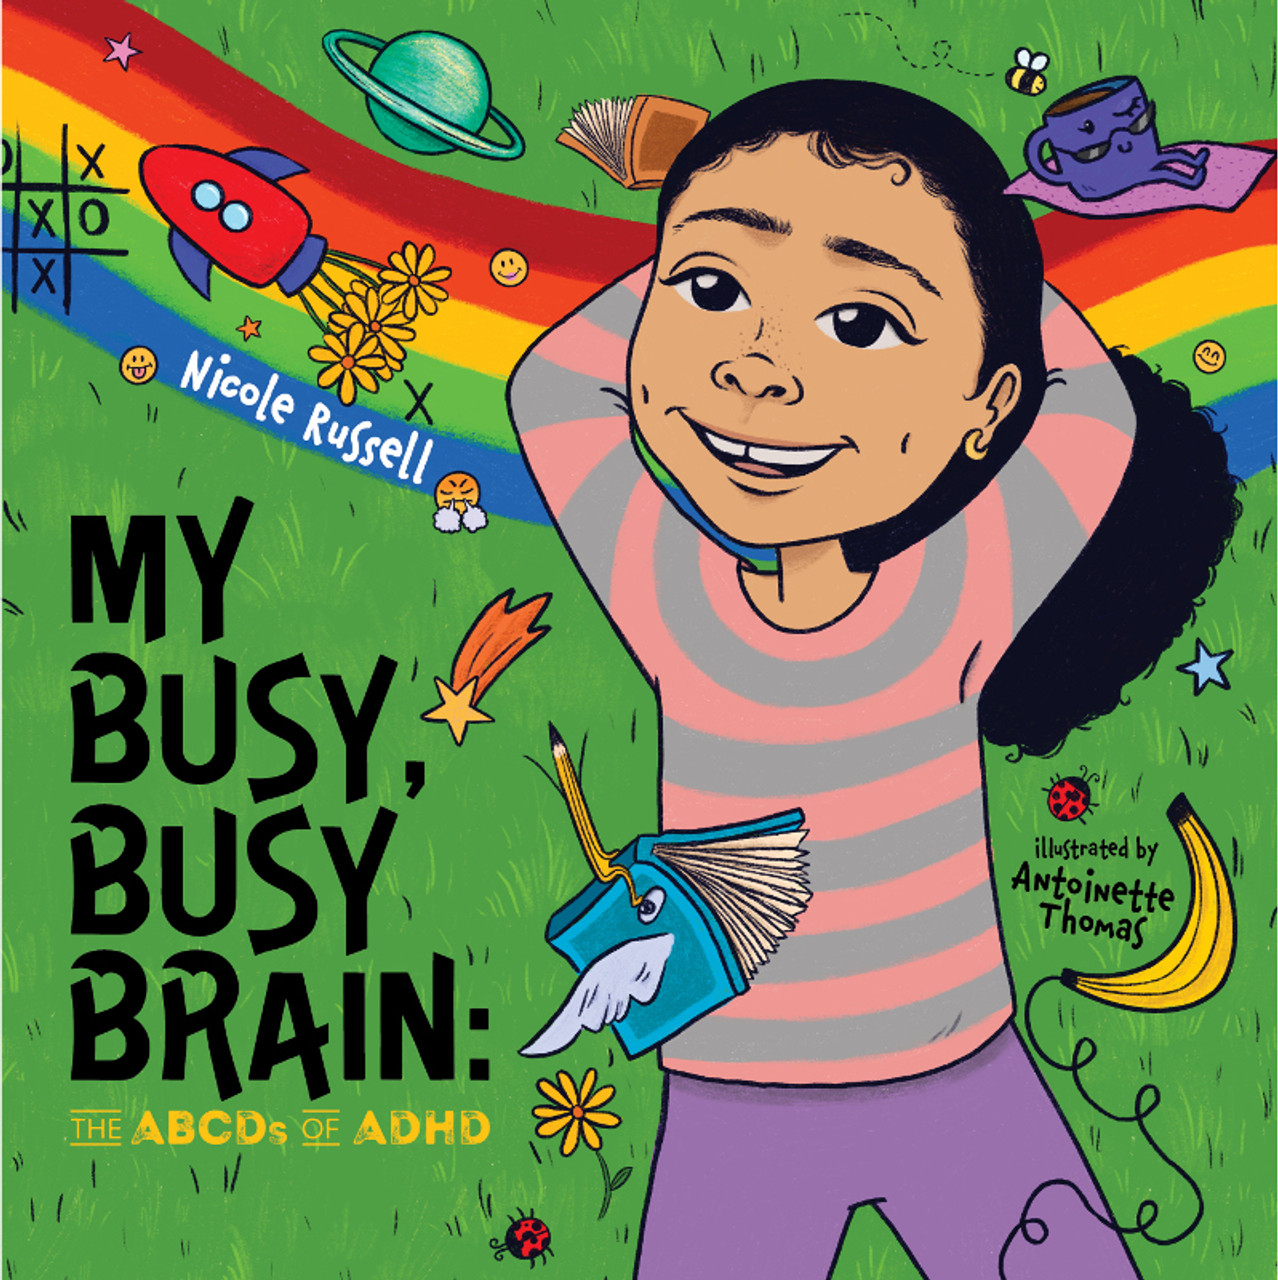 My Busy, Busy Brain: The ABCDs of ADHD